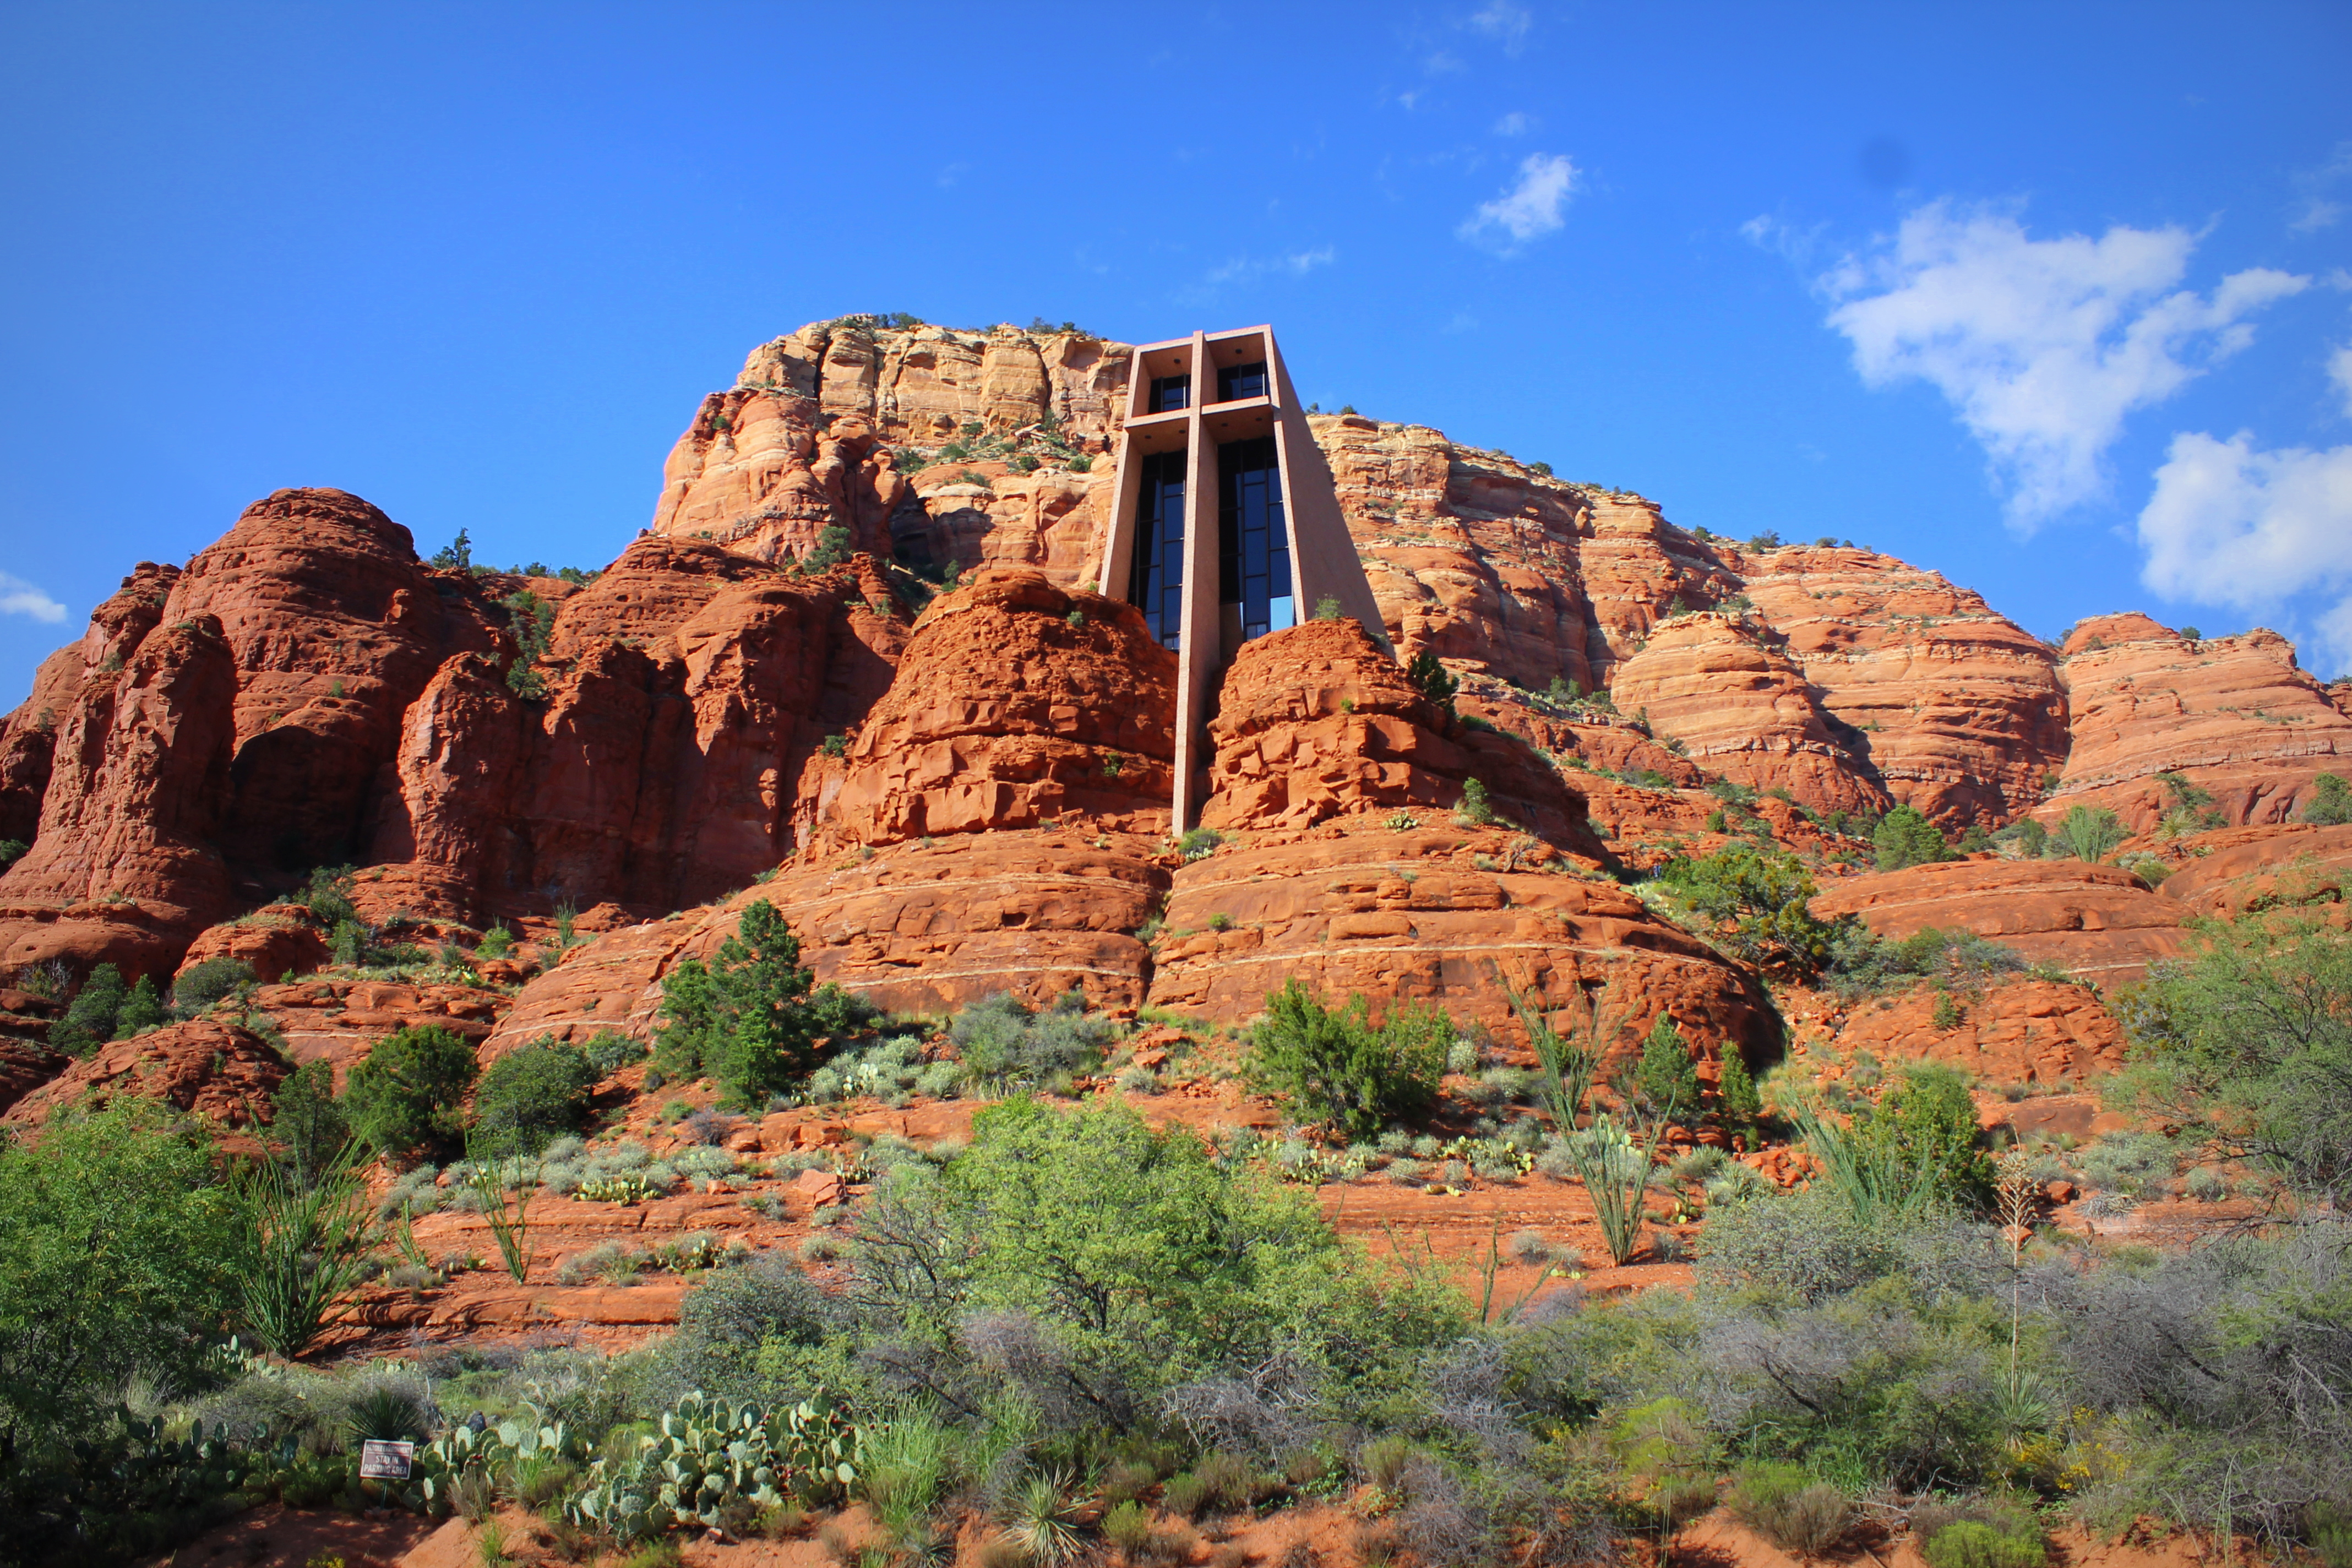 Sedona One Of The Most Beautiful Places On Earth Ericka Andersen